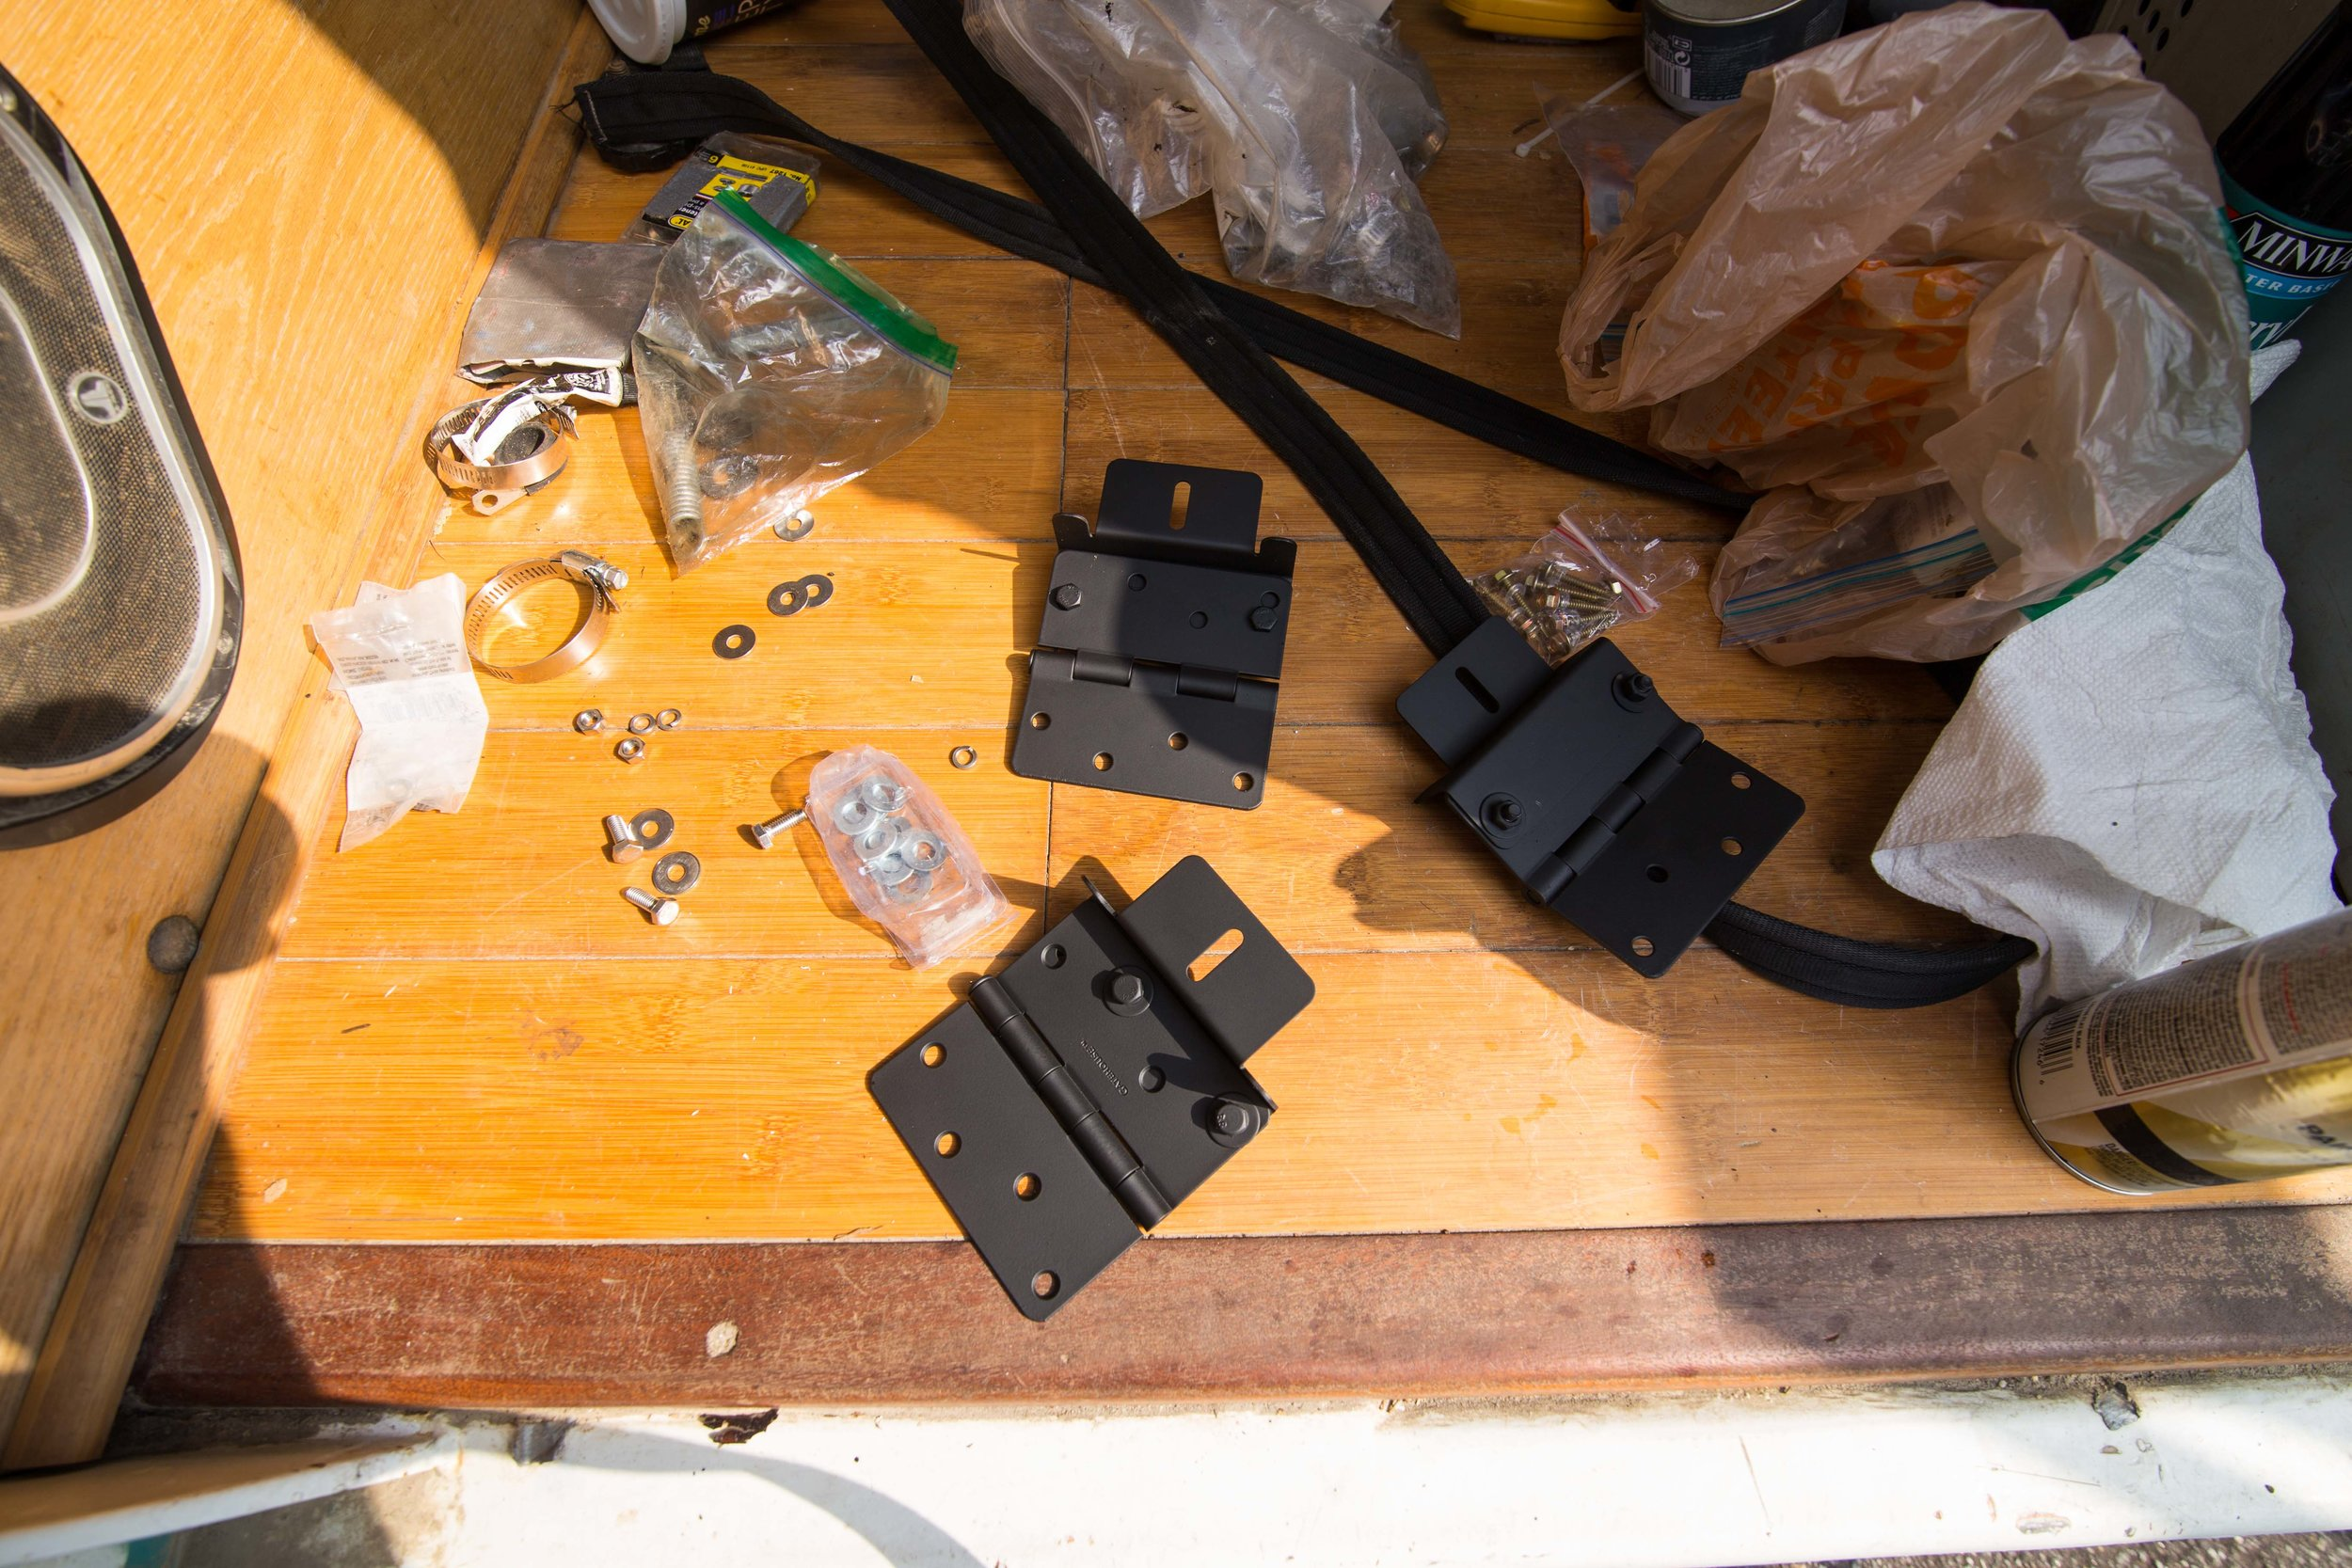 Once you have the holes drilled mount the hardware to join the two. I spray painted everything black for a cleaner look that matches the black edges of the solar panels. The mounting brackets come in a silver finish, and the hinges come in an assortment of finishes.